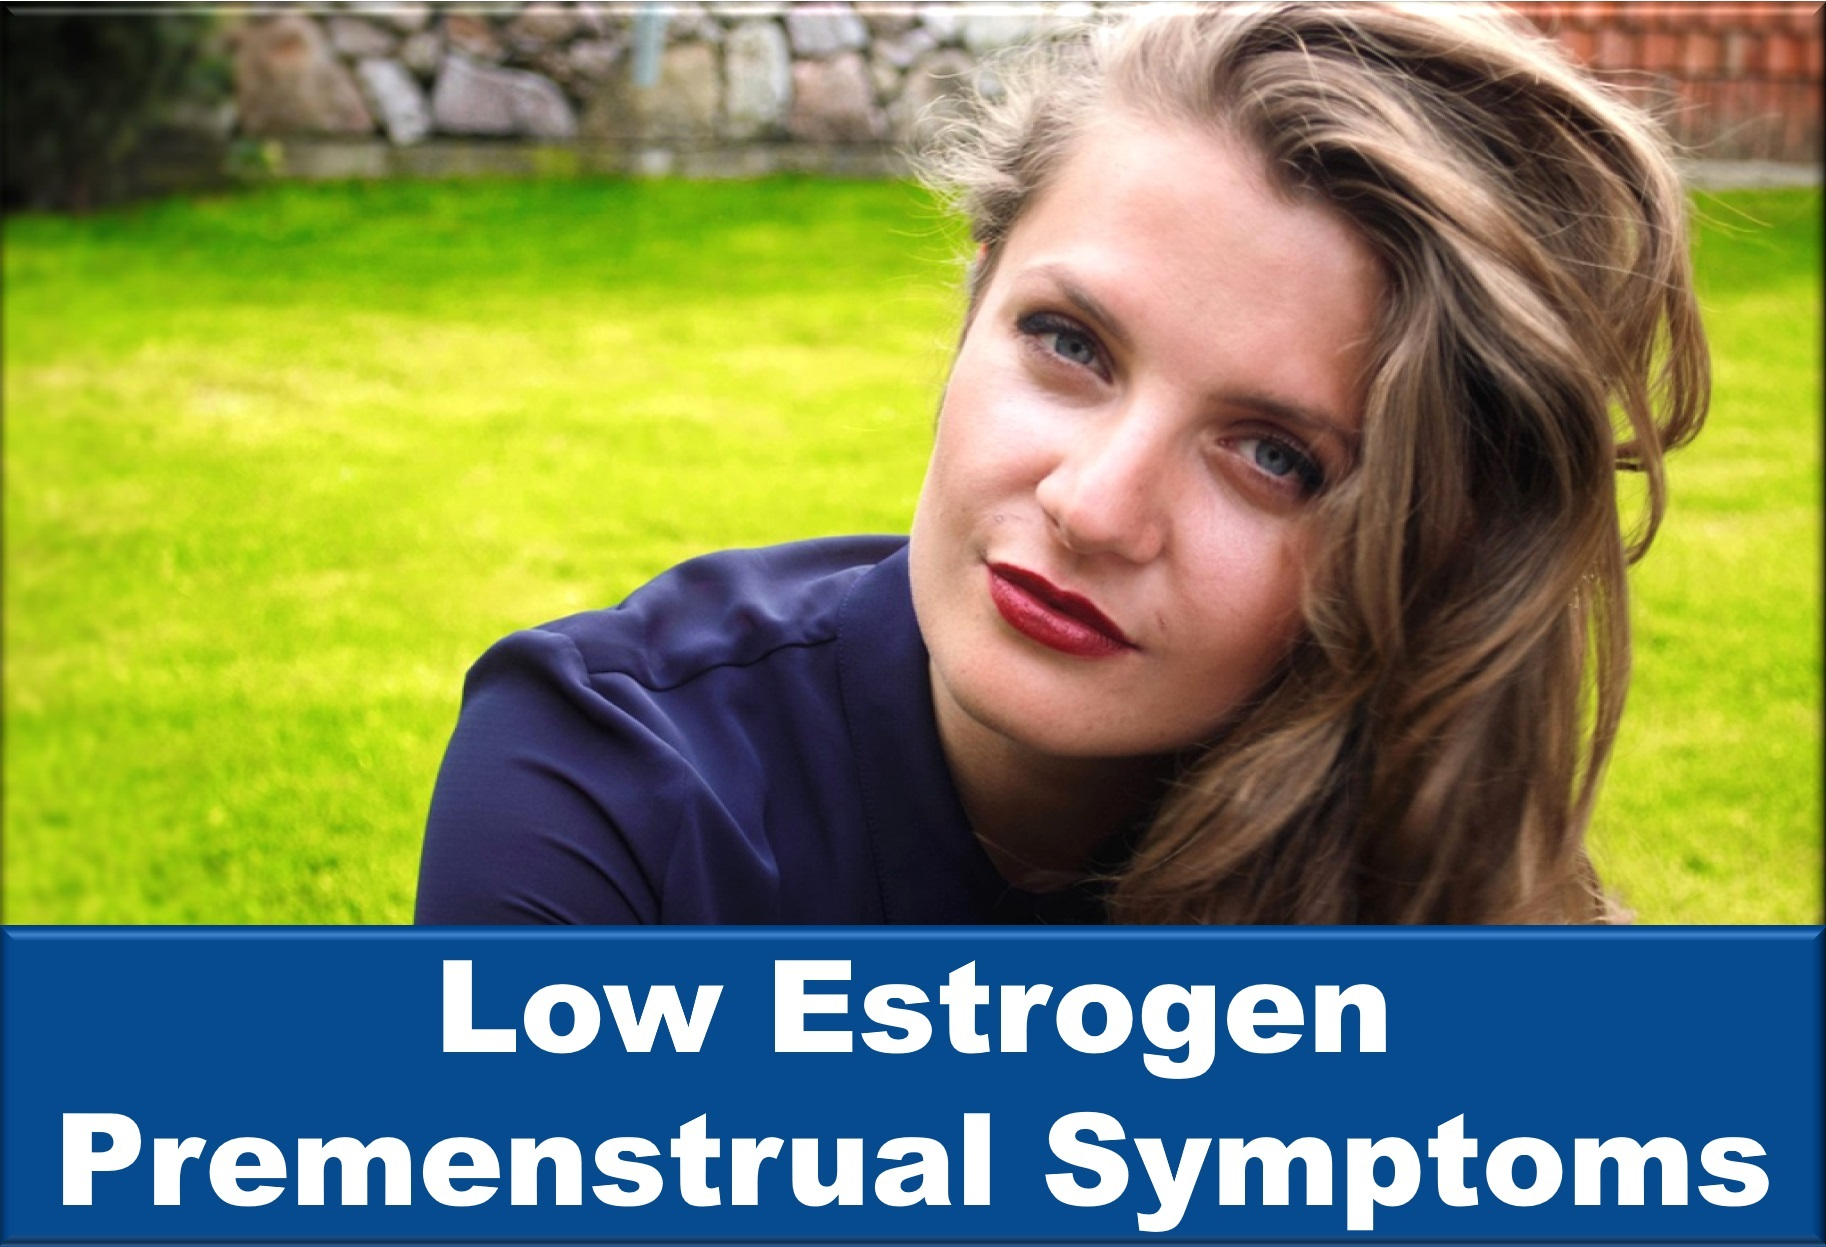 Low Estrogen Premenstrual Symptoms